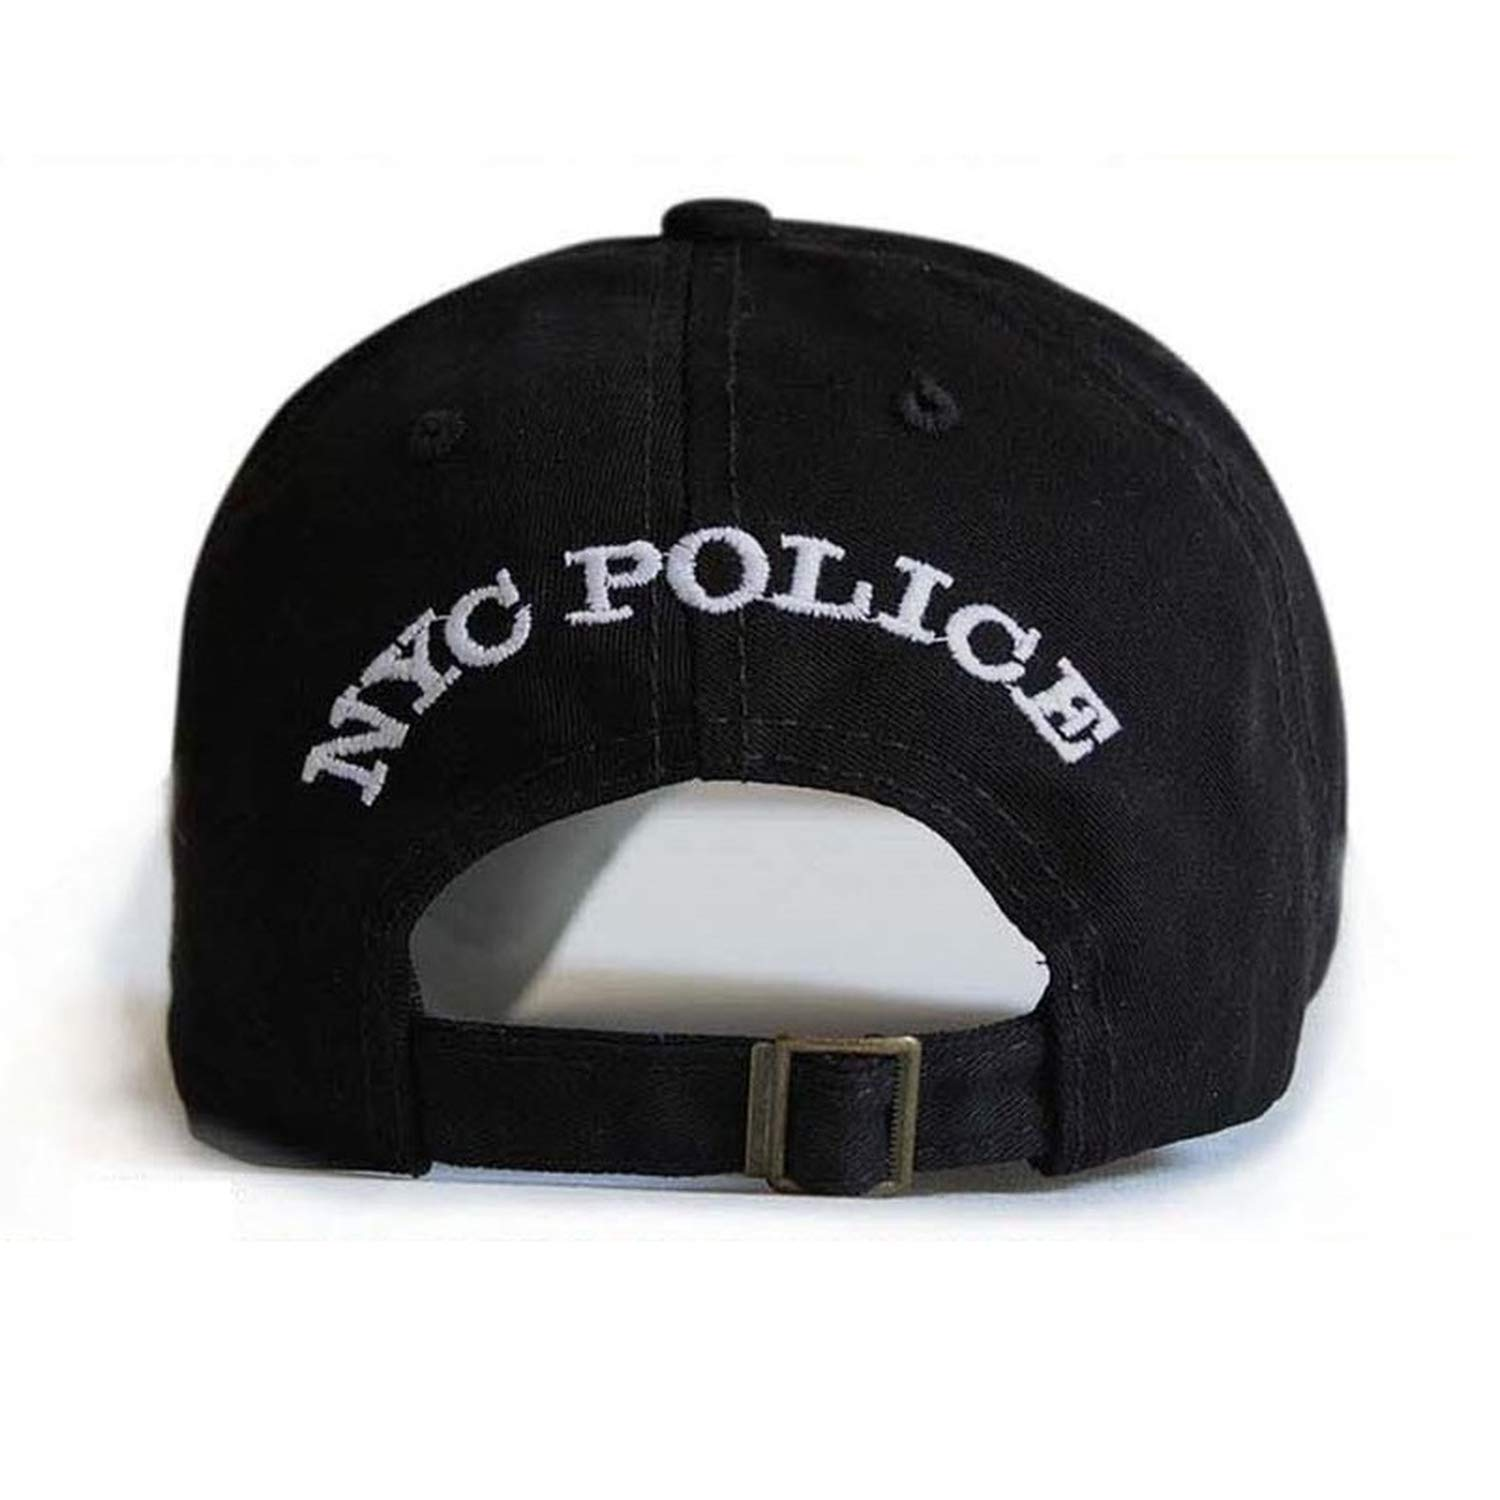 Letter Baseball Caps Leisure Embroidery Police Baseball Cap Snapback Hats for Men Women Cap Snap Back at Amazon Womens Clothing store: